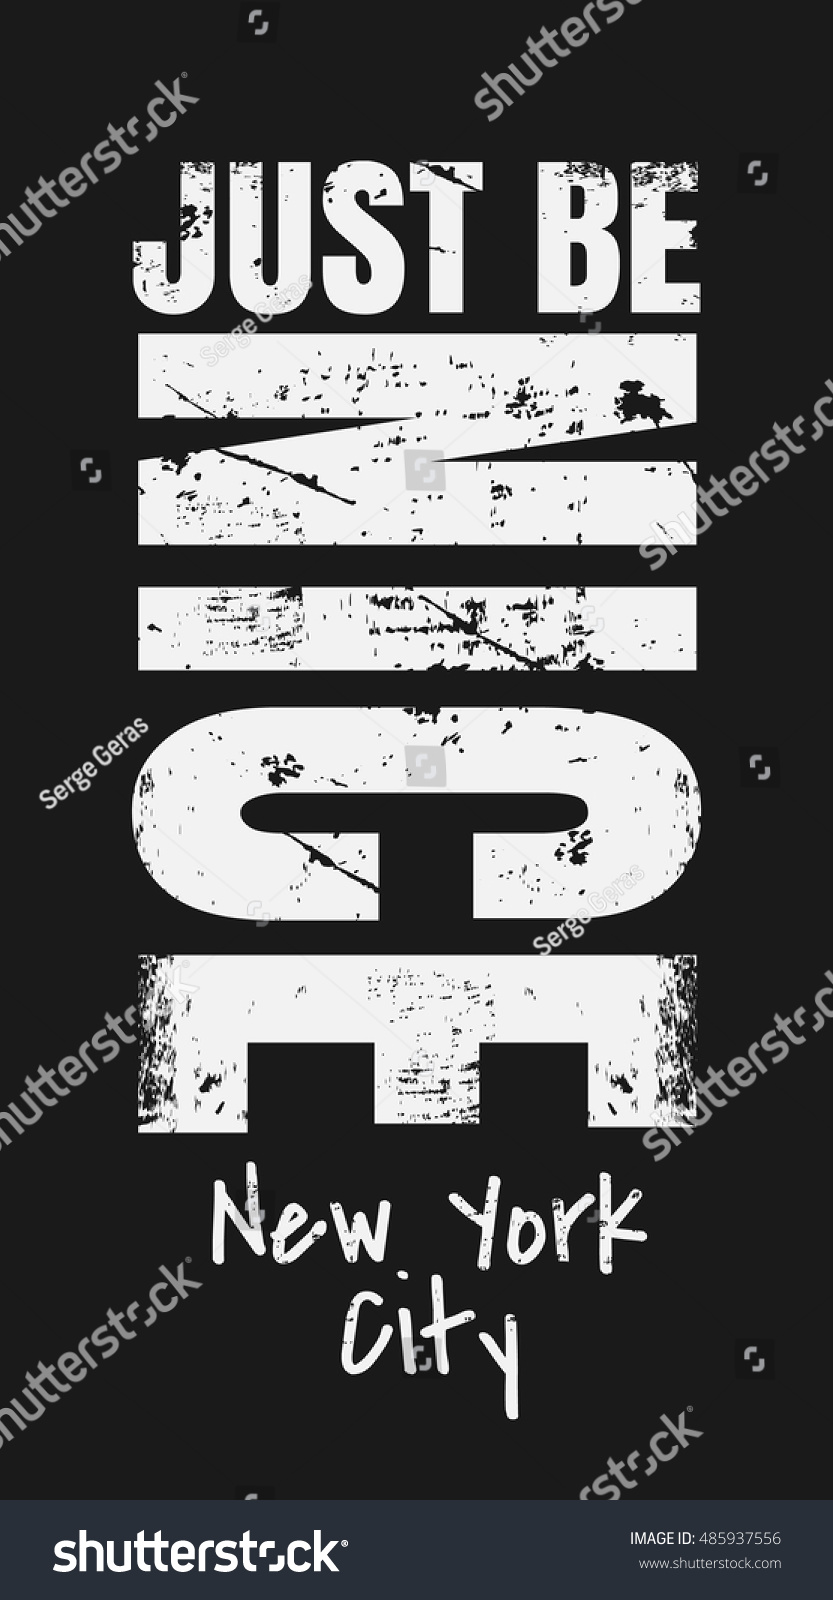 T shirt poster design - Slogan Just Be Nice New York City Grunge Design T Shirt